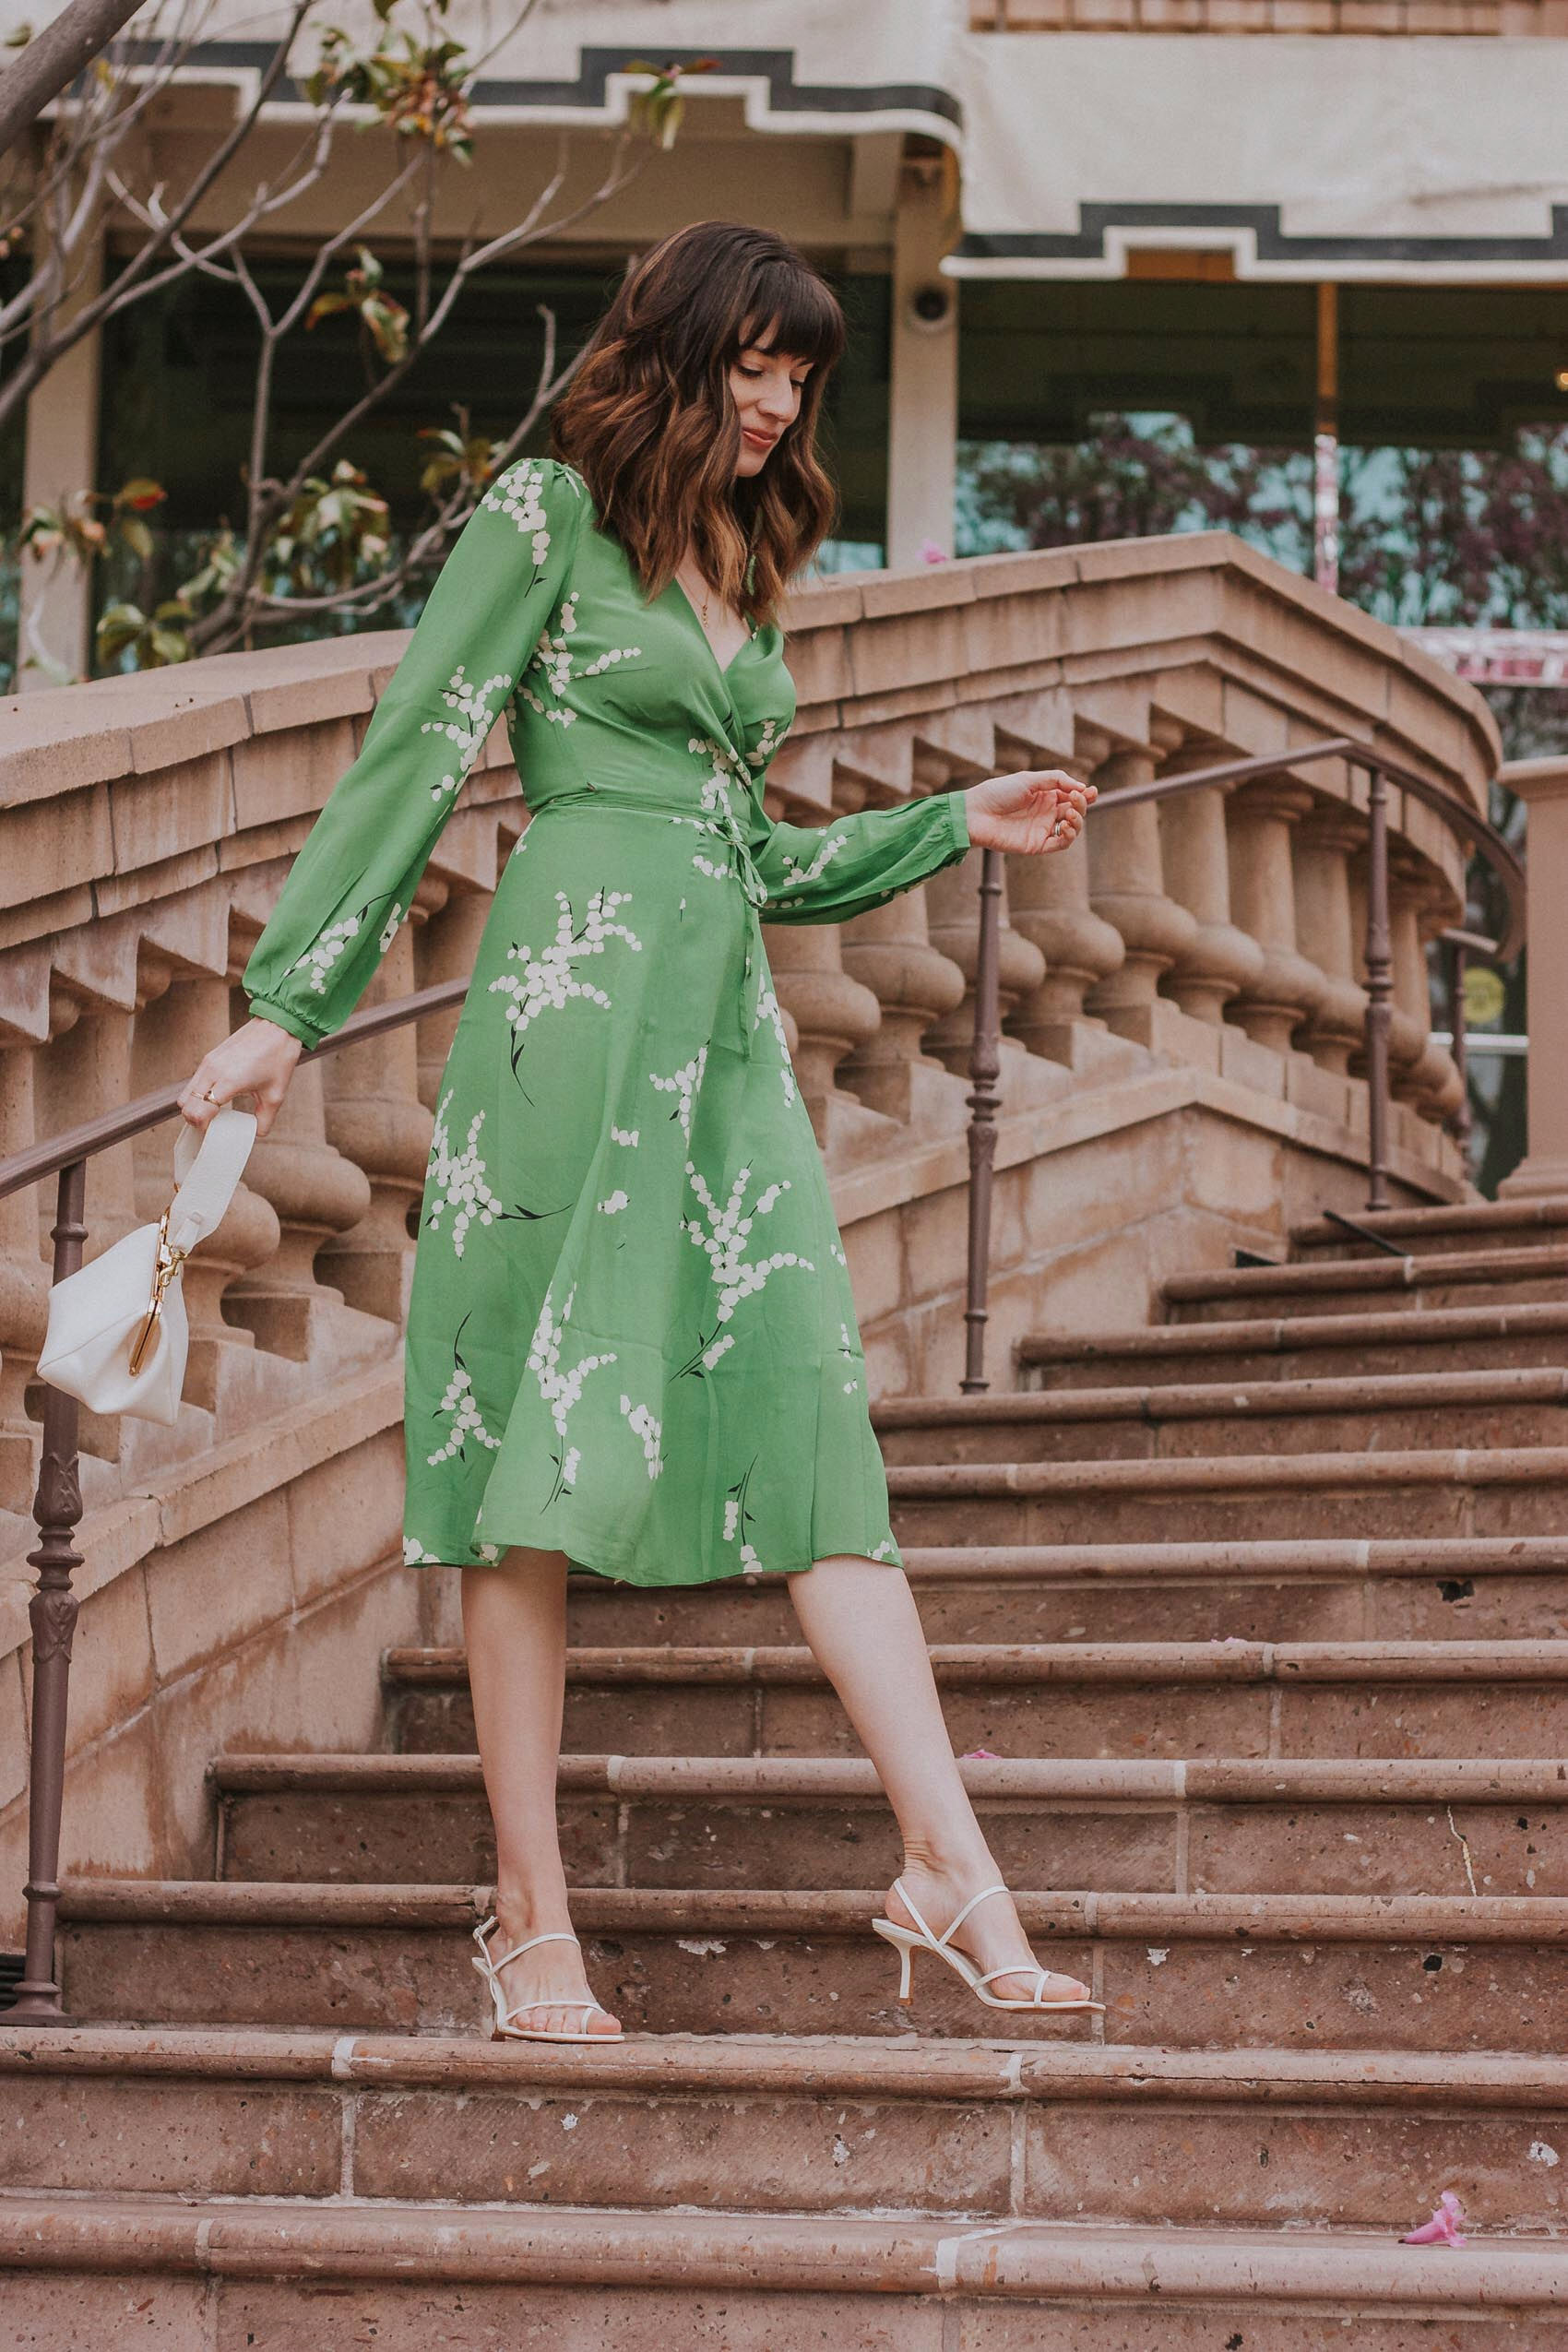 Silk Midi dress with long sleeves and Zara square toe sandals